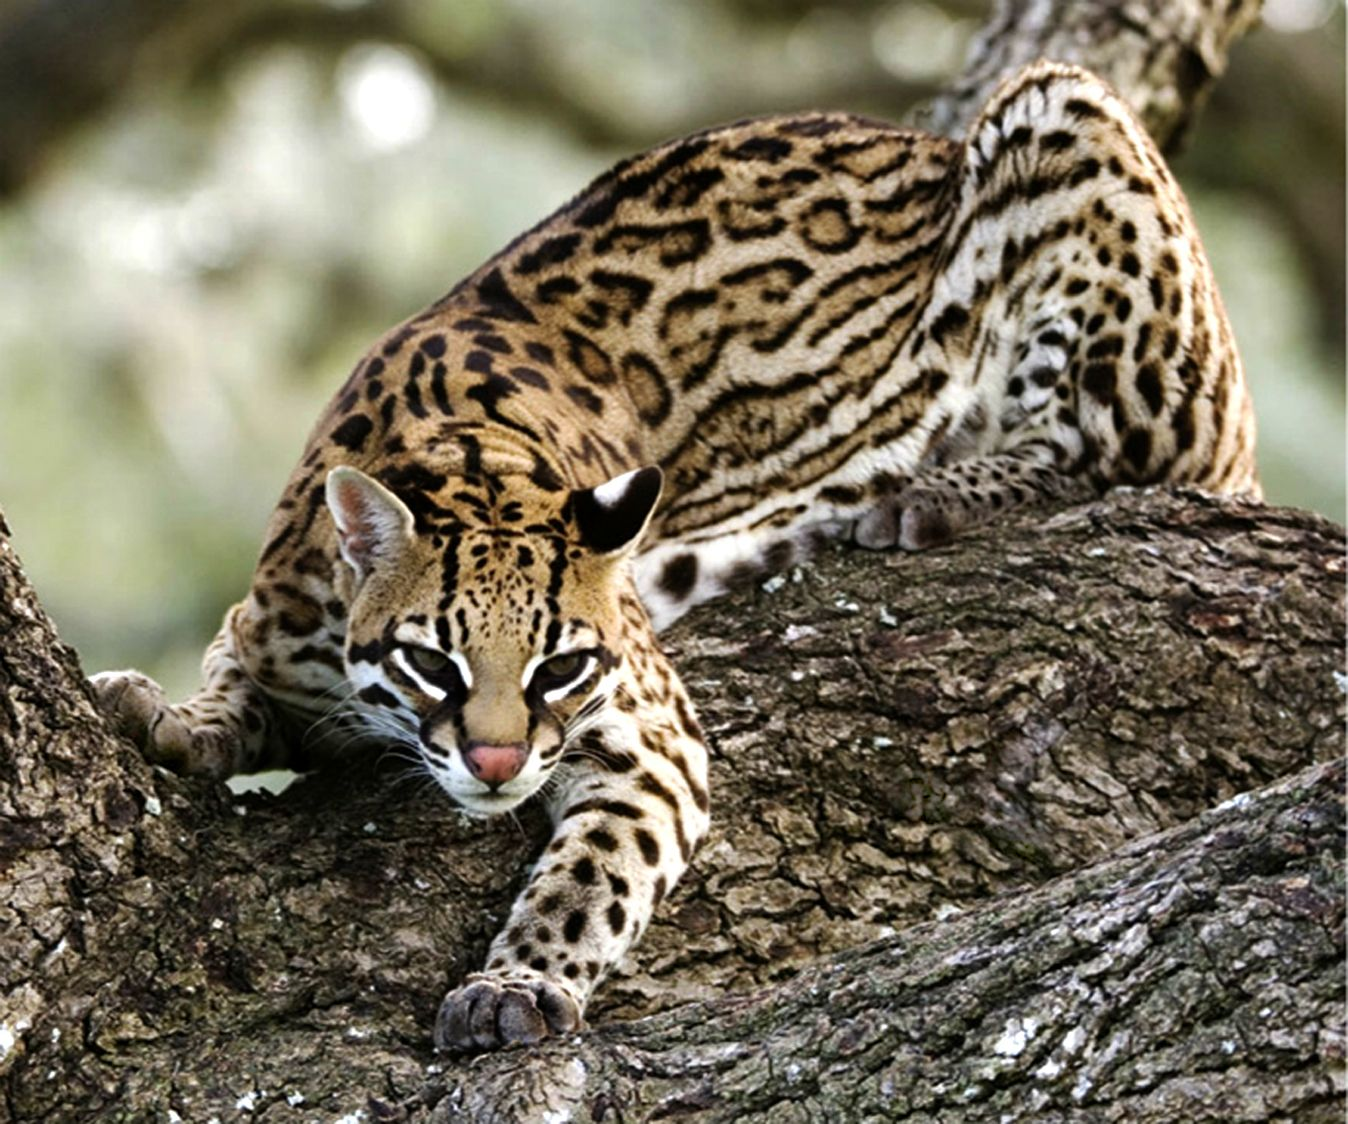 10 Legal Small Exotic Cats That Are Kept as Pets  PetHelpful